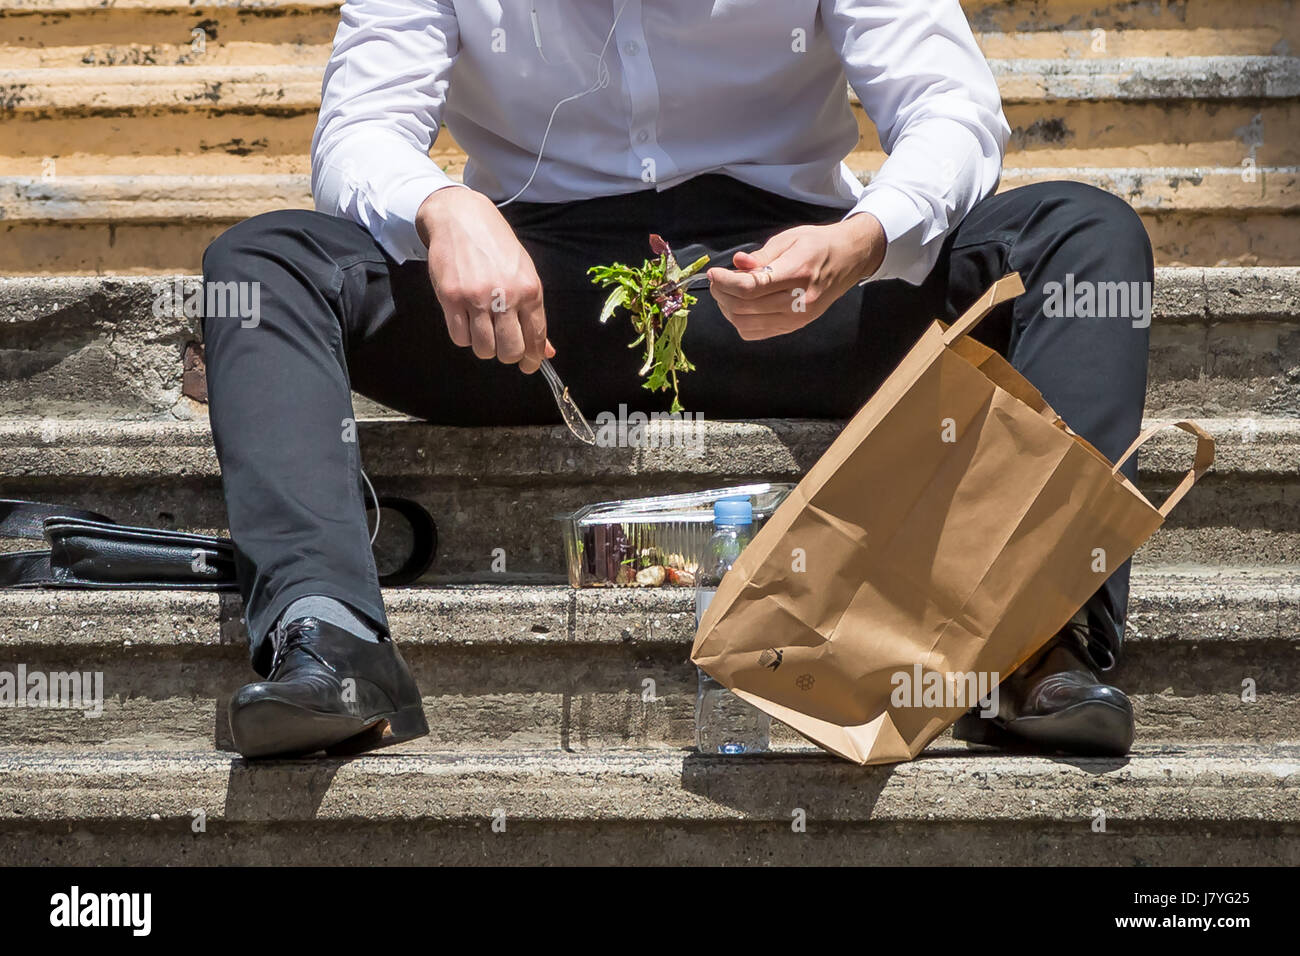 A city worker takes a lunch break. London, UK. - Stock Image